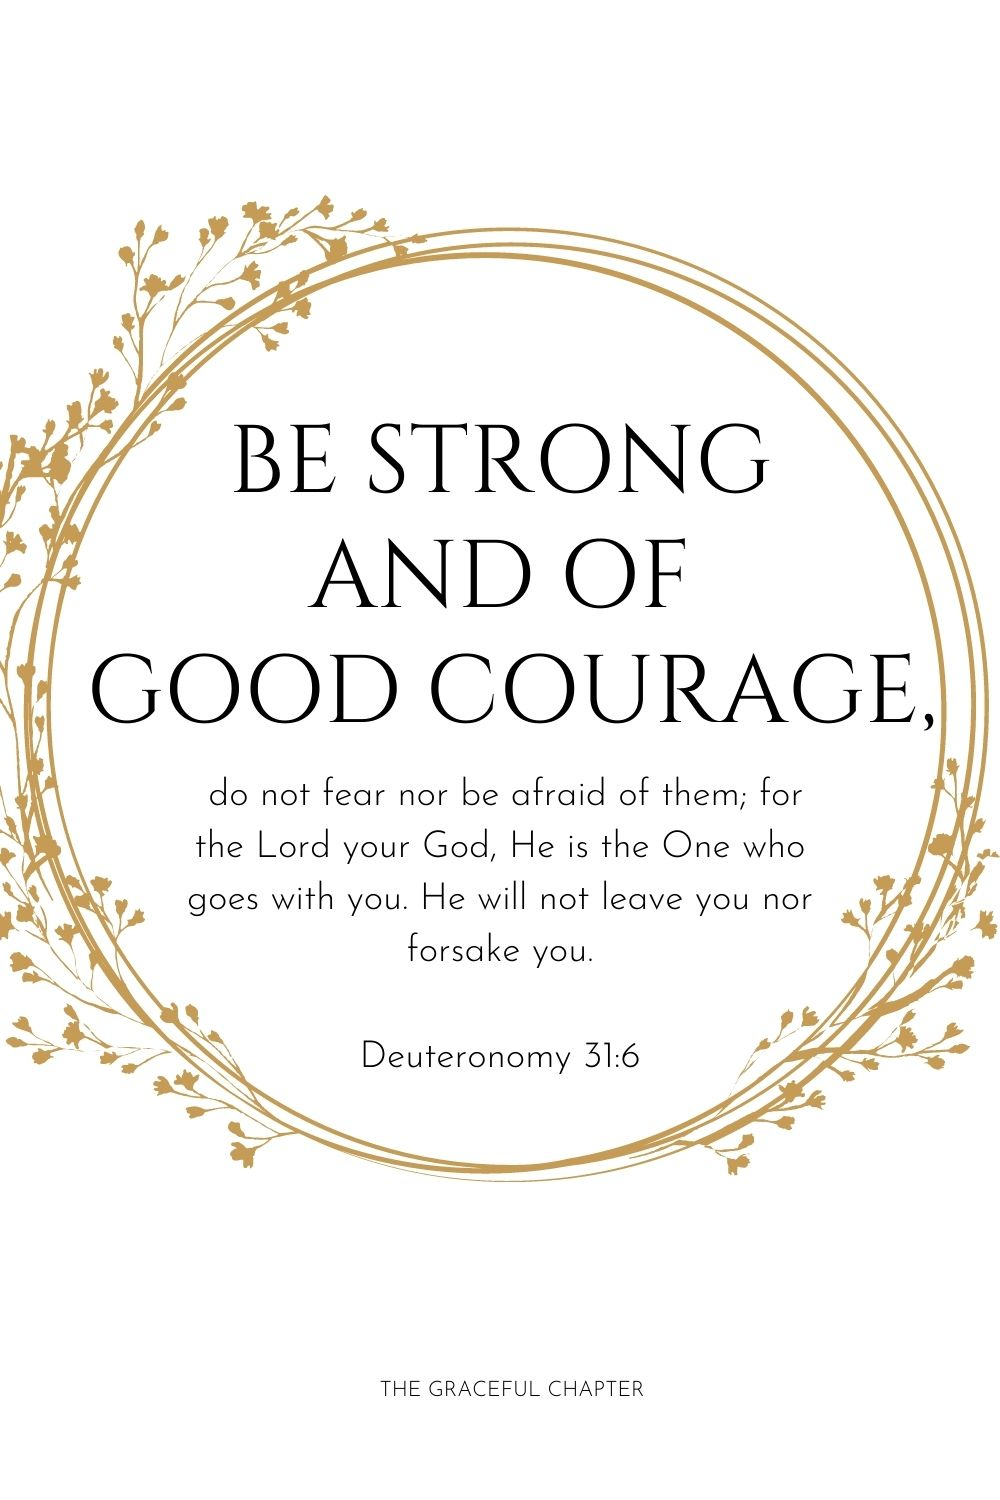 Be strong and of good courage, do not fear nor be afraid of them; for the Lord your God, He is the One who goes with you. He will not leave you nor forsake you. Deuteronomy 31:6